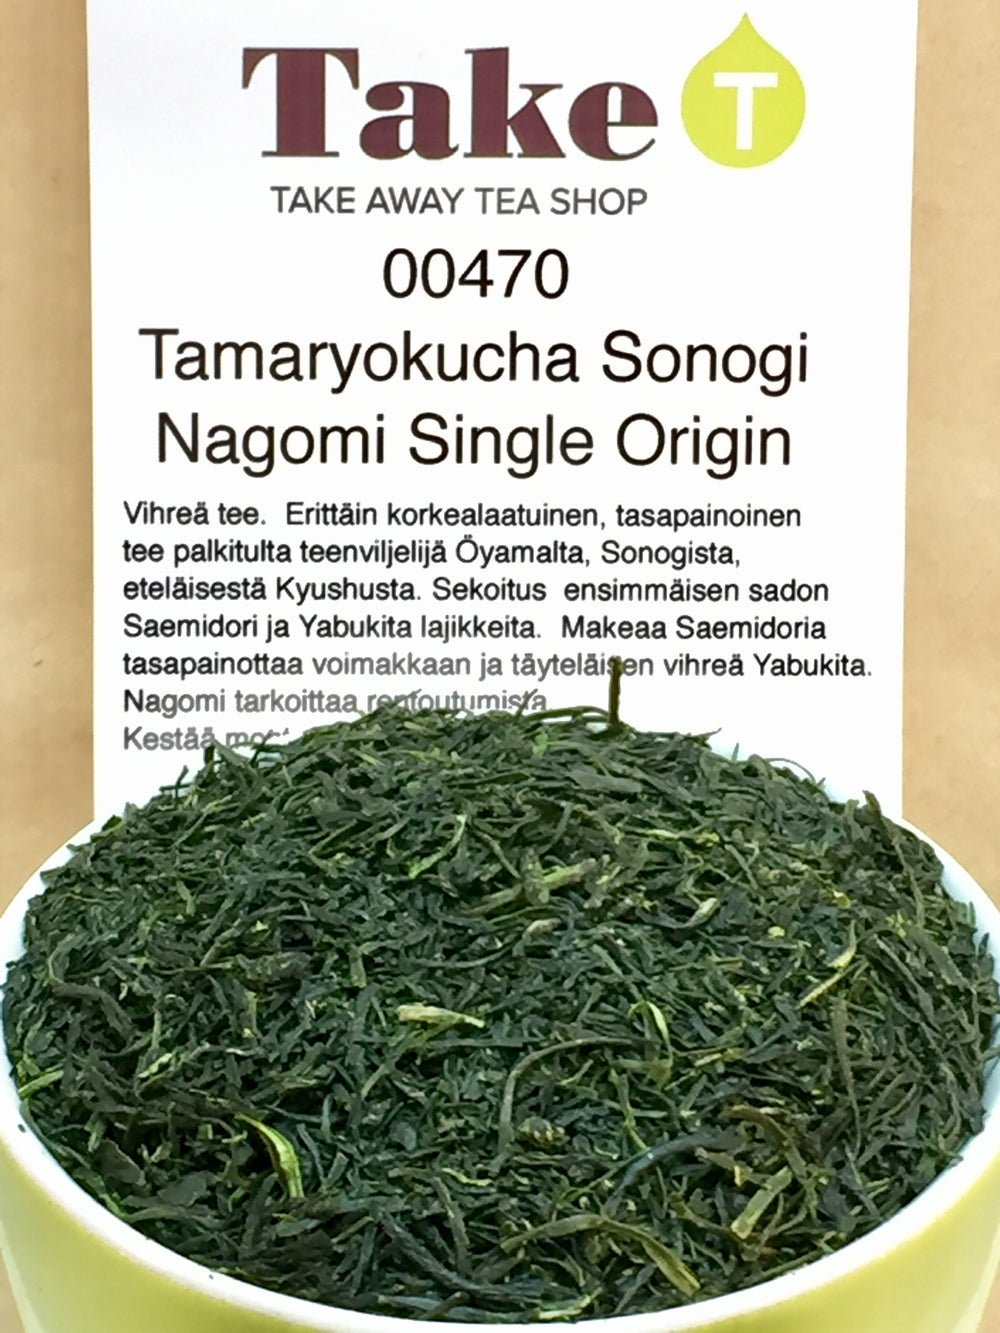 Tamaryokucha Sonogi Nagomi Single Origin